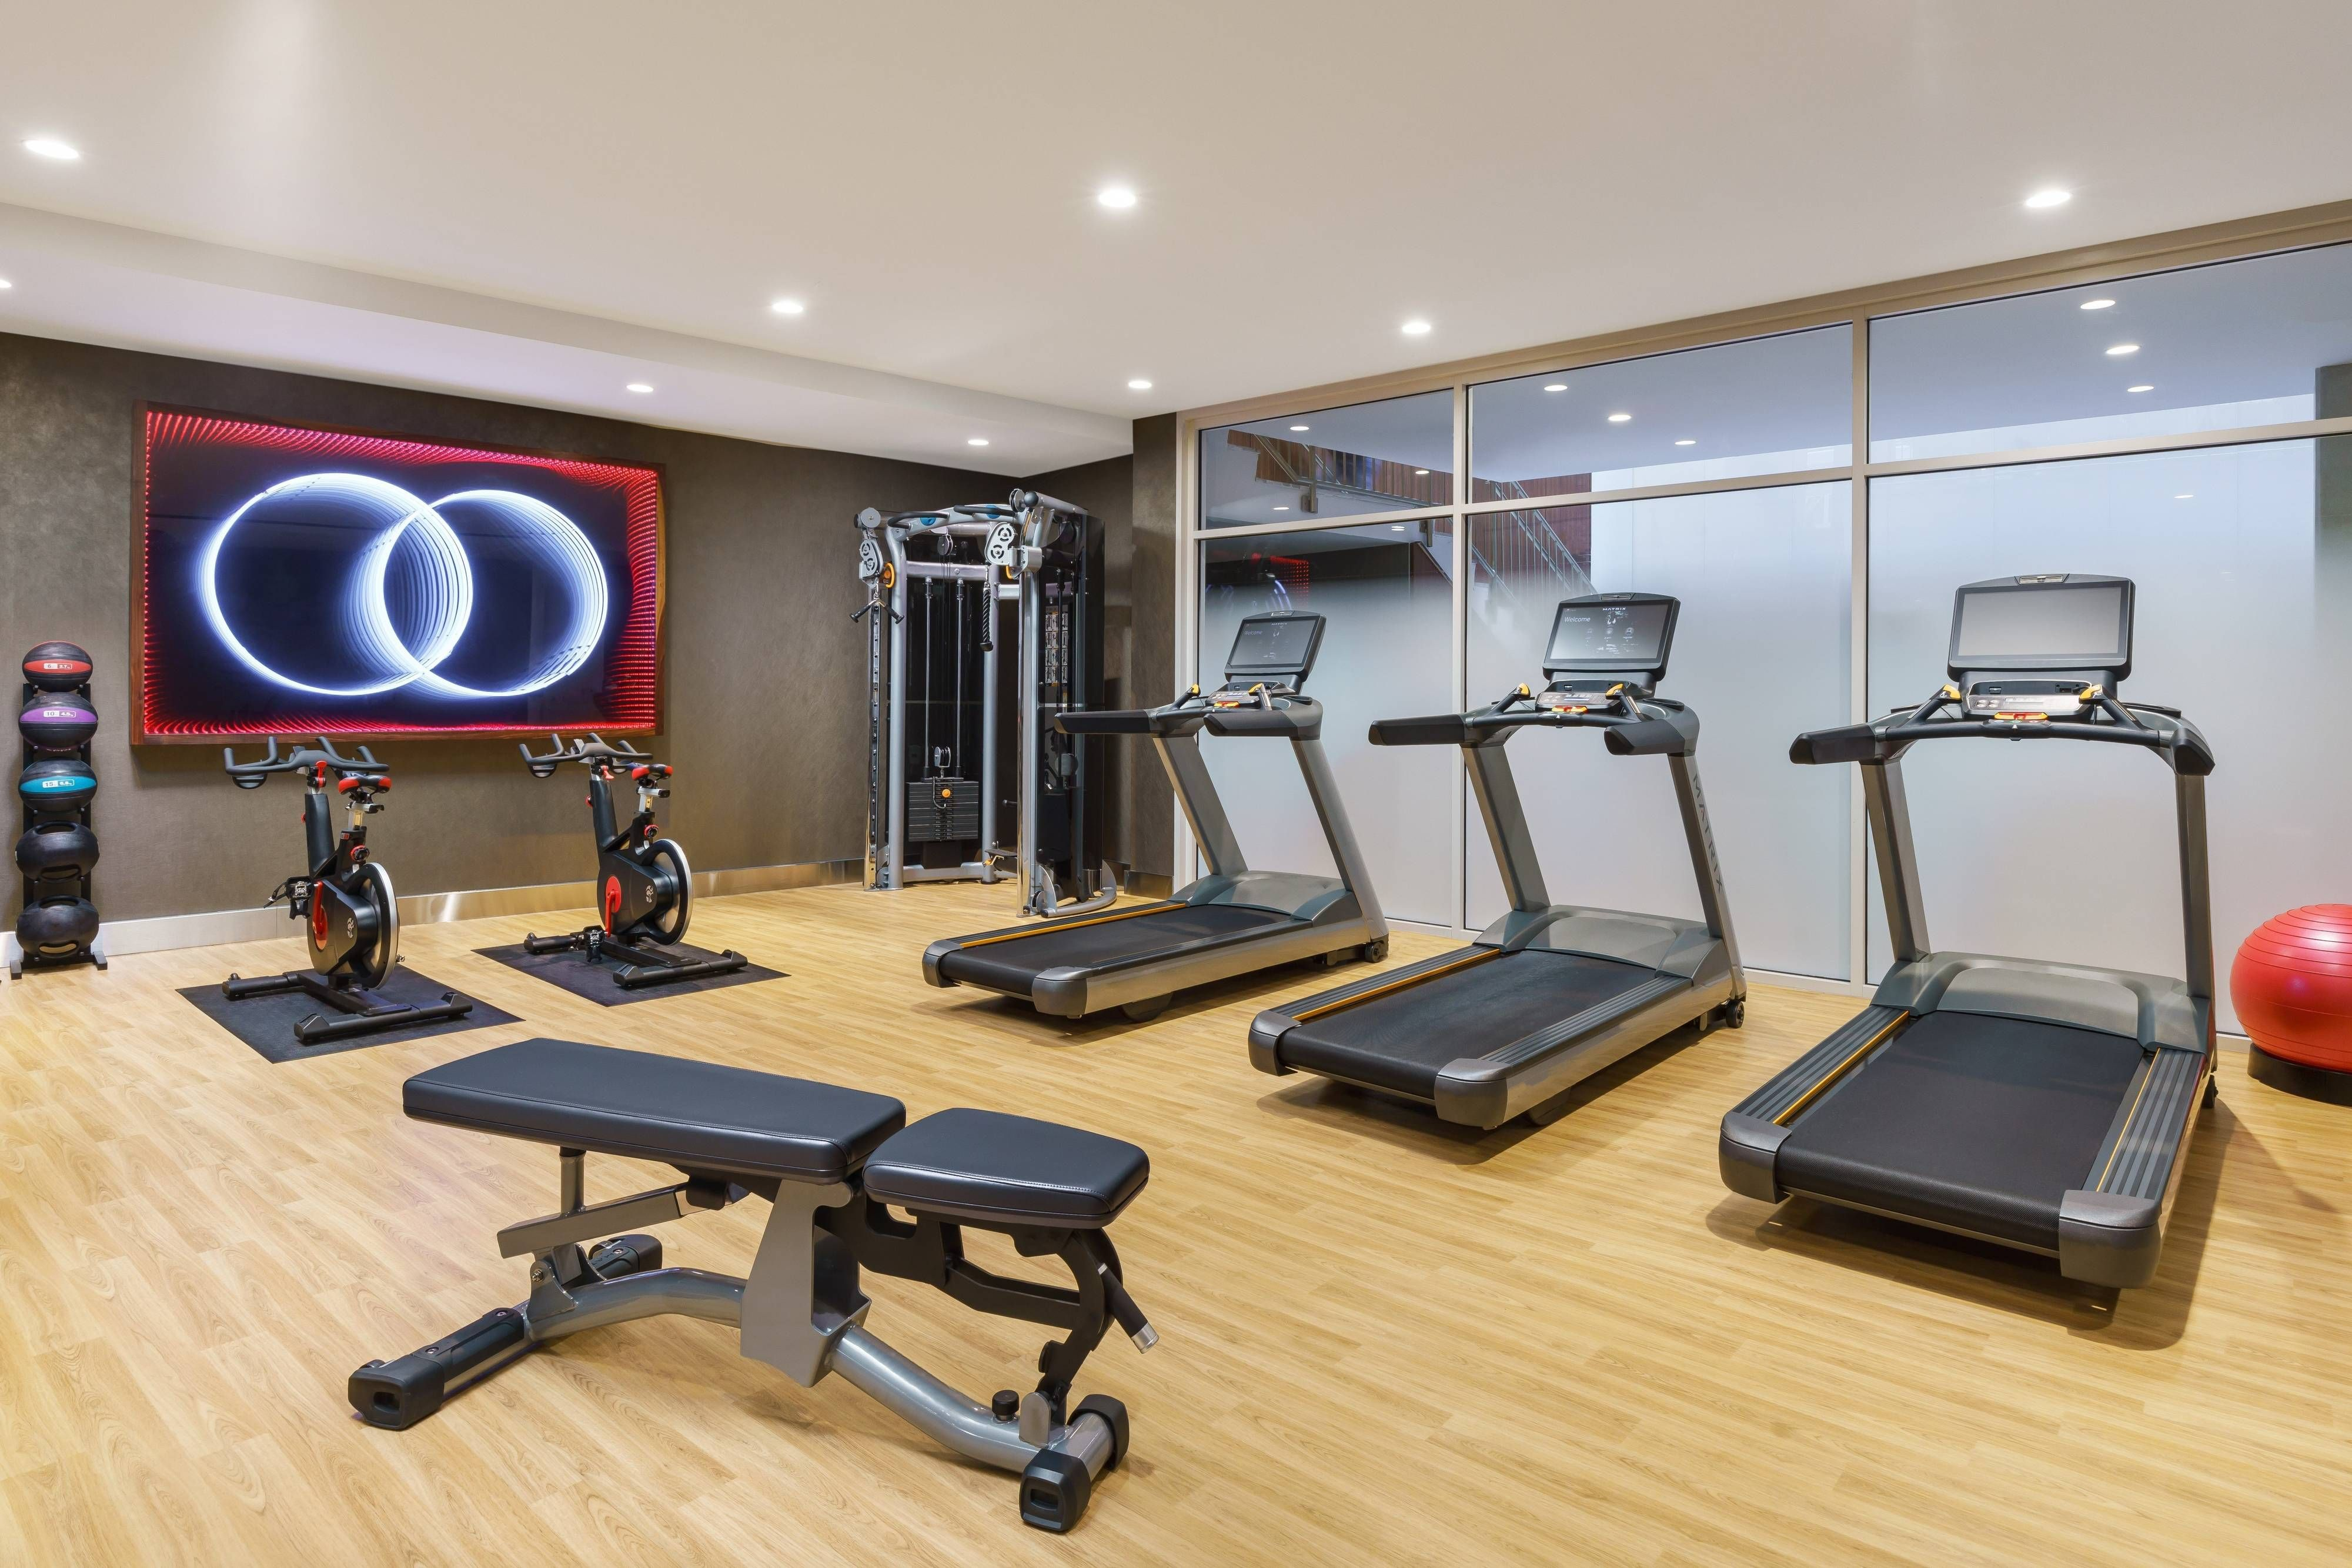 Ac Hotel New York Times Square Ac Fitness Center Comfort Hotels Holidays Hotel Ac Hotel Ny Hotel